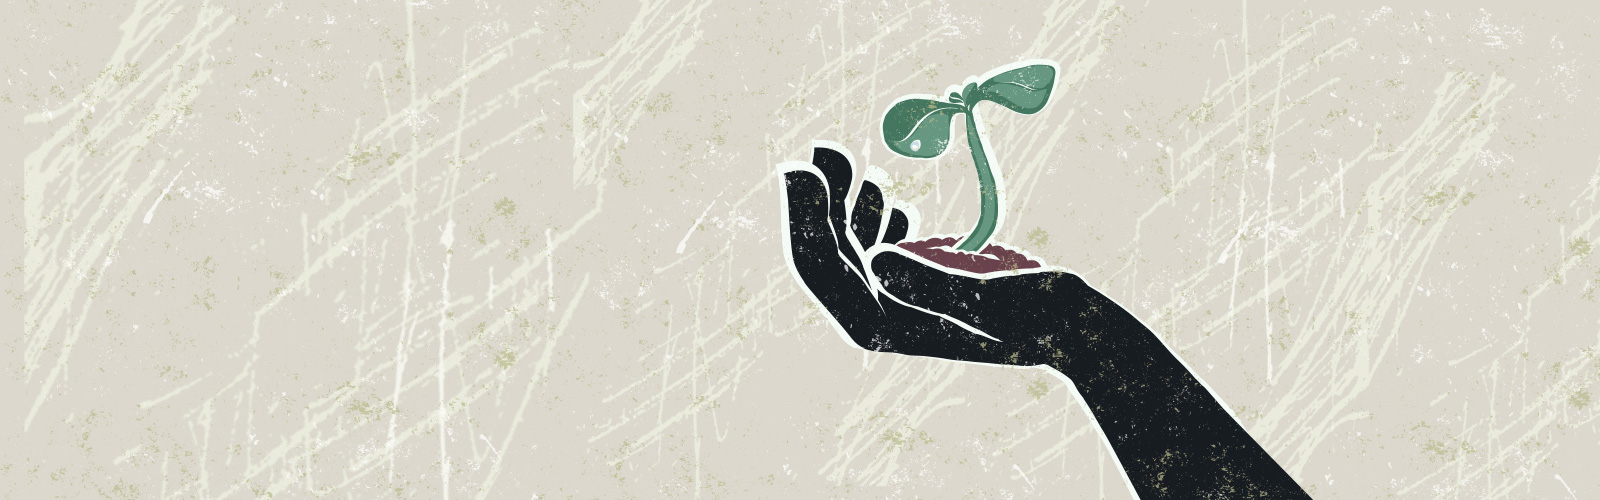 Illustration showing plant growing out of soil, being held by black hand